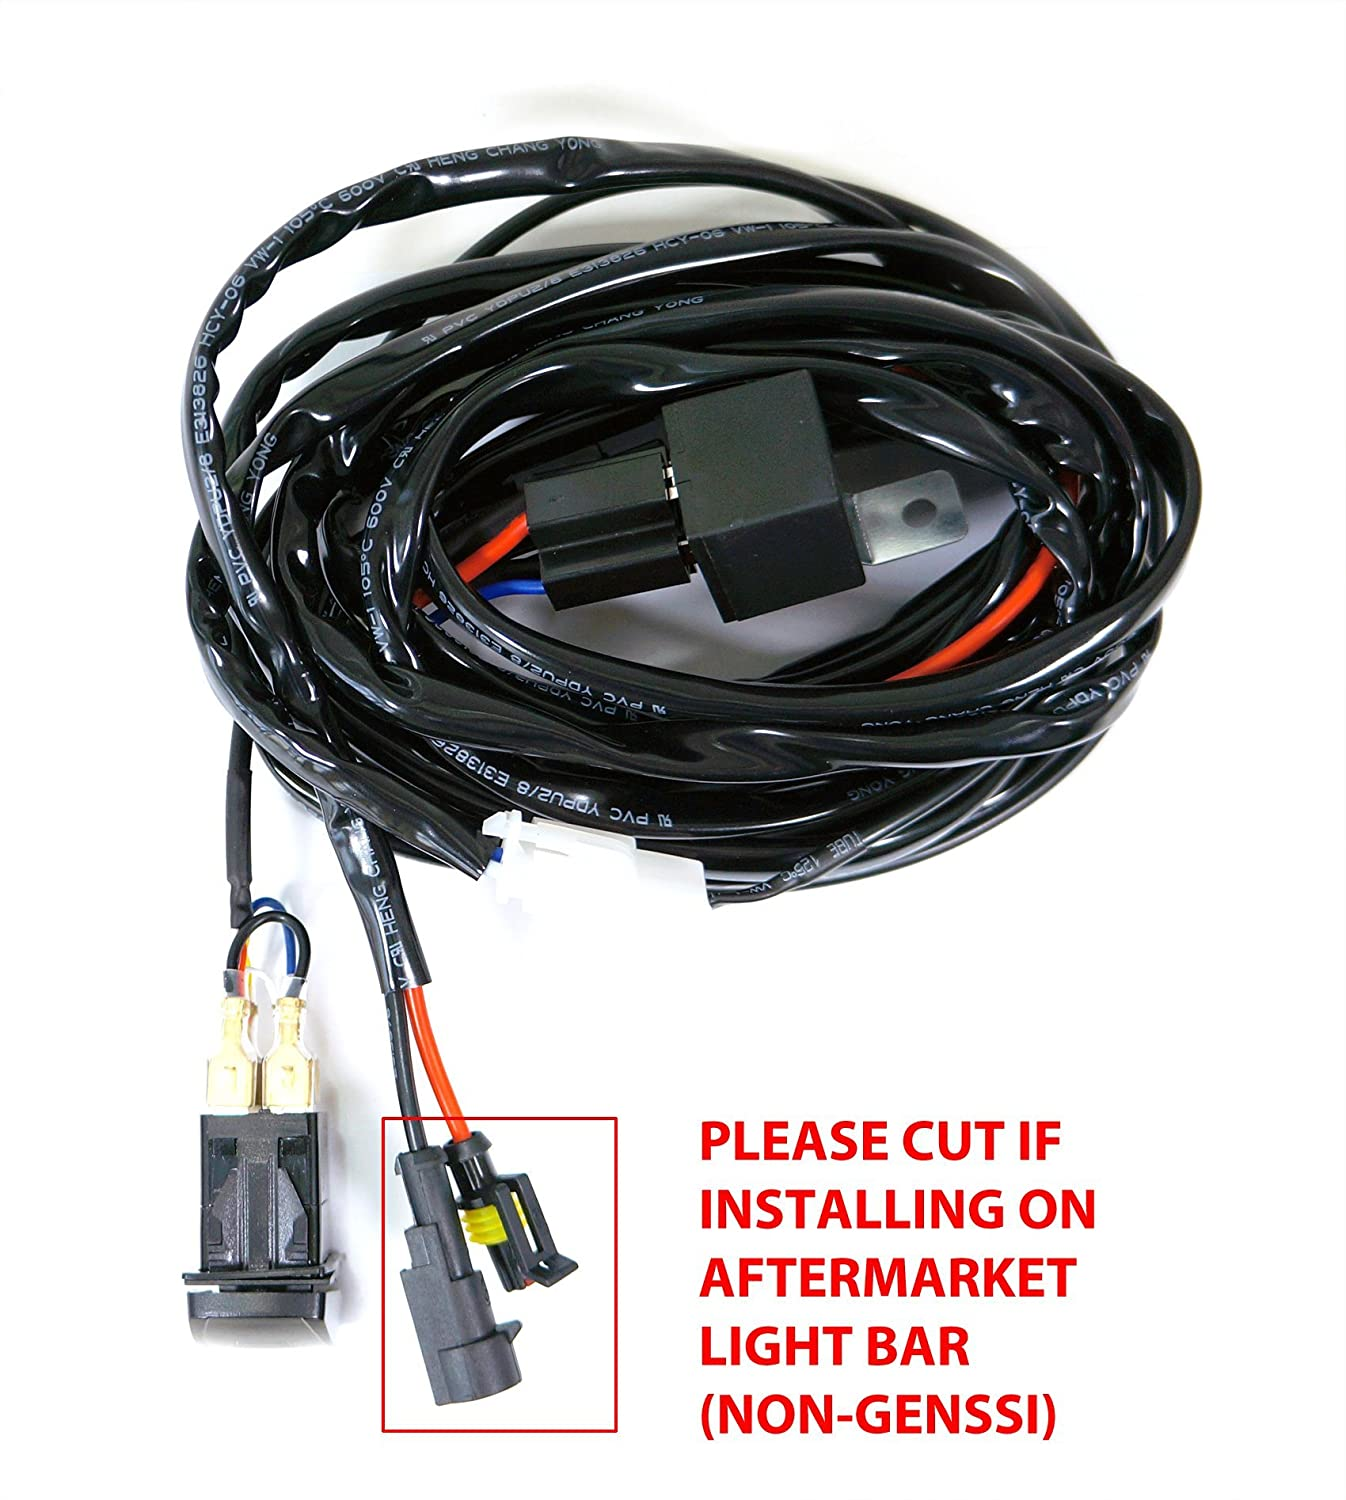 Genssi Led Wiring Harness Experts Of Diagram Light Amazon Com Bar Relay And Switch 9ft 4x4 Off Rh Road Lights